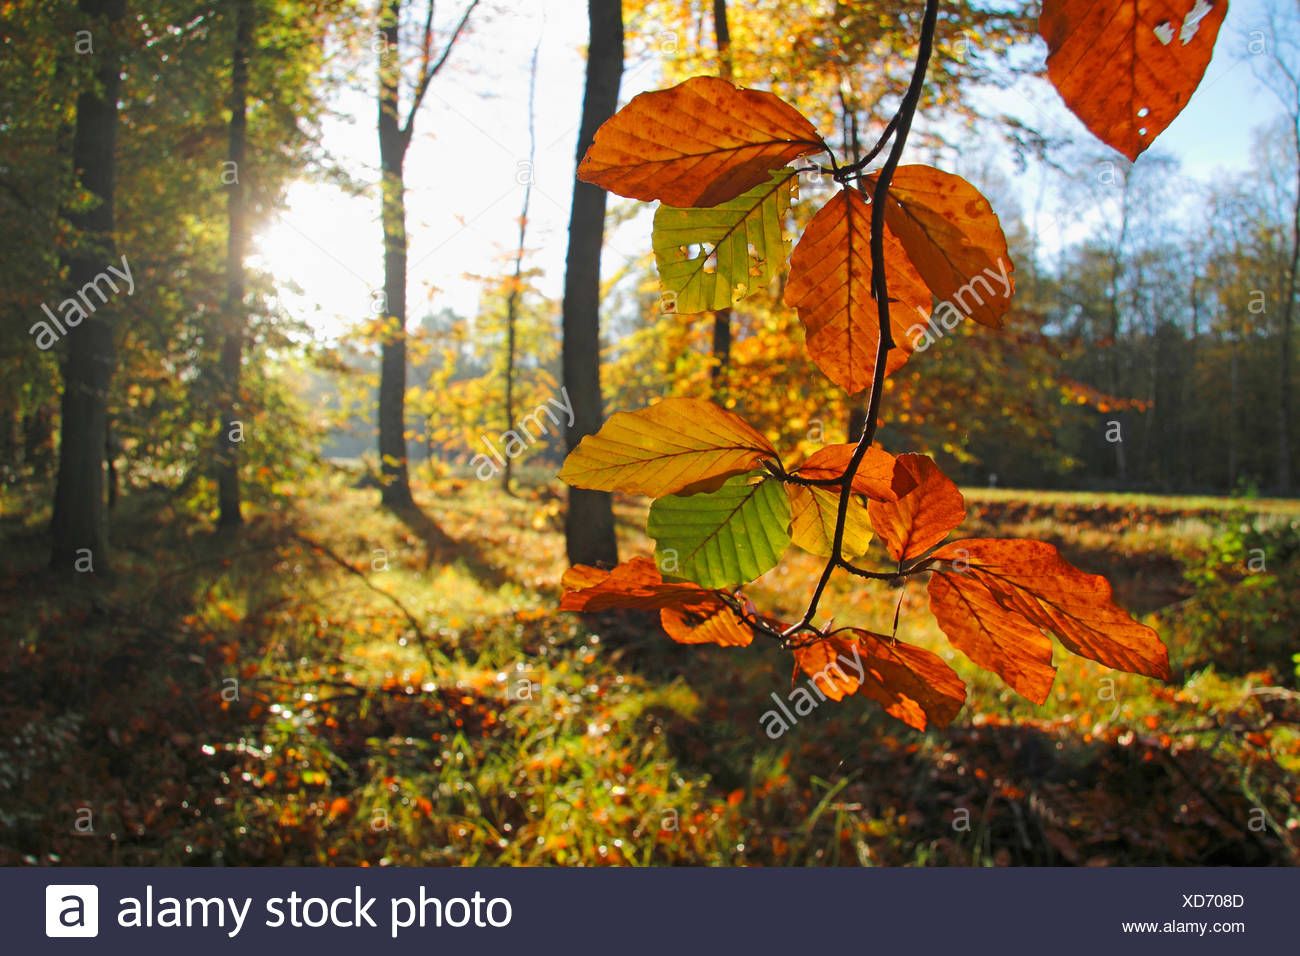 common beech (Fagus sylvatica), the sun shines through the leafs in an autumn coloured forest, Germany, Baden-Wuerttemberg, Ortenau - Stock Image